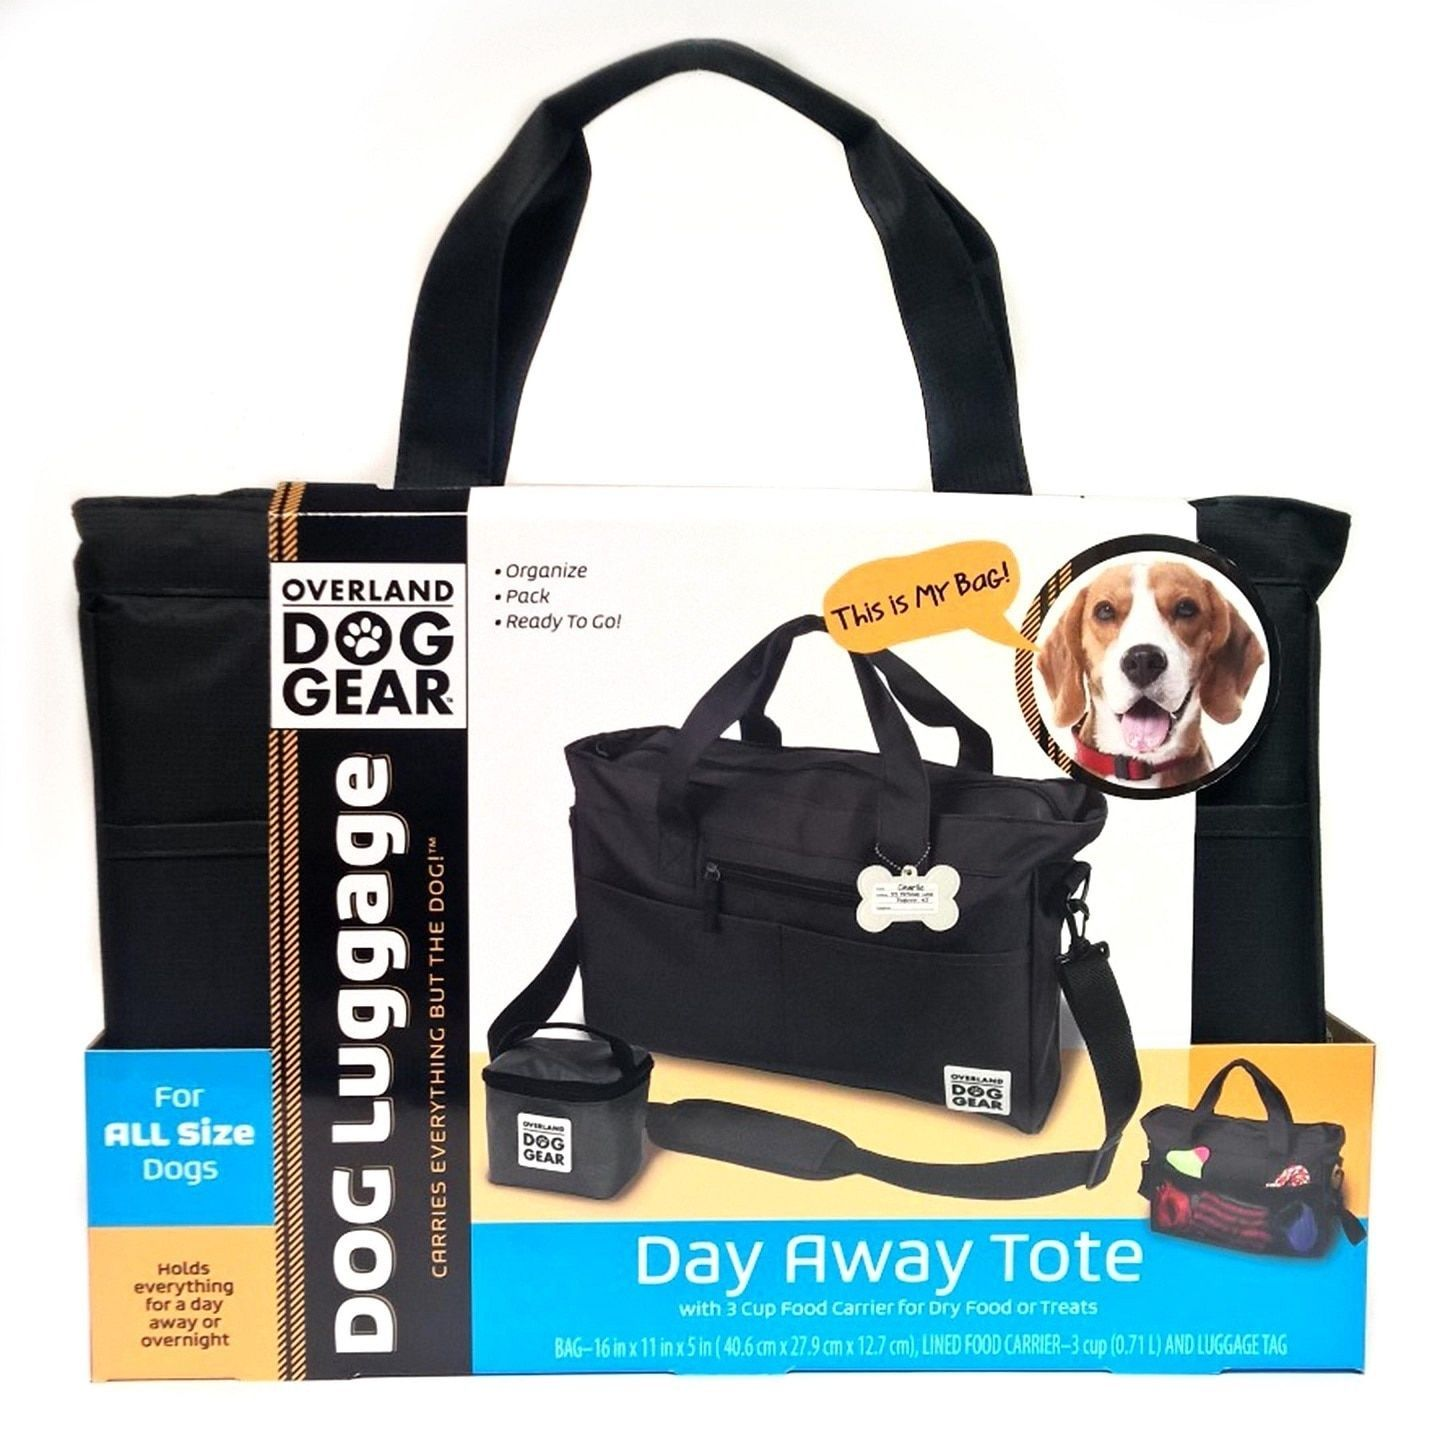 Overland Dog Gear Black Day Away Tote Bag And Carrier Overland